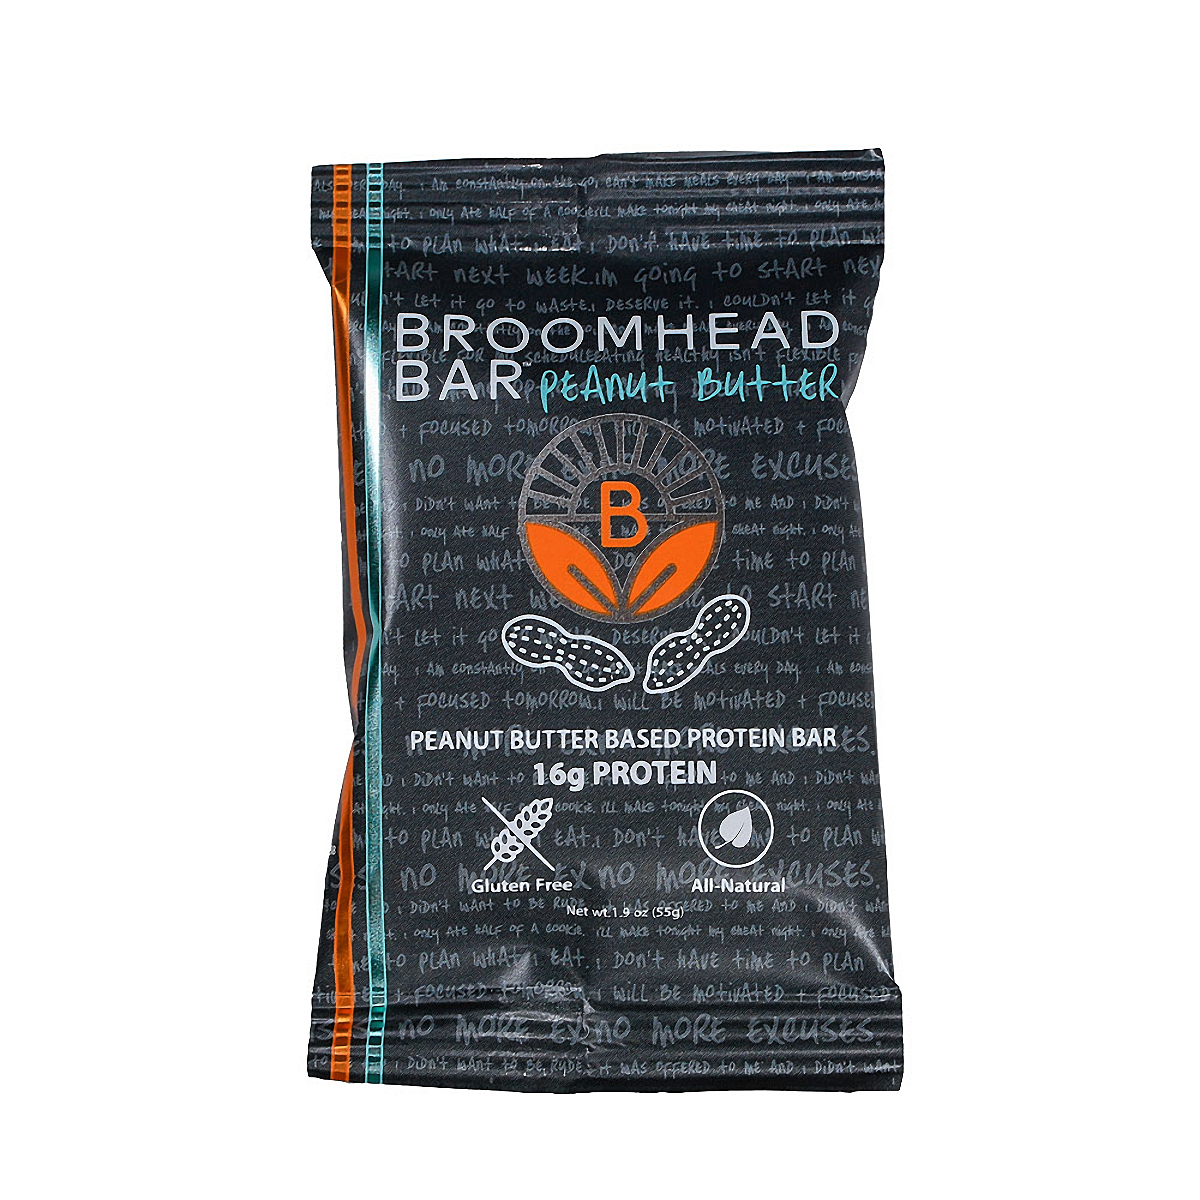 Broomhead Peanut Butter Bar - Flavor: Peanut Butter - Size: Box of 10, Peanut Butter, large, image 1